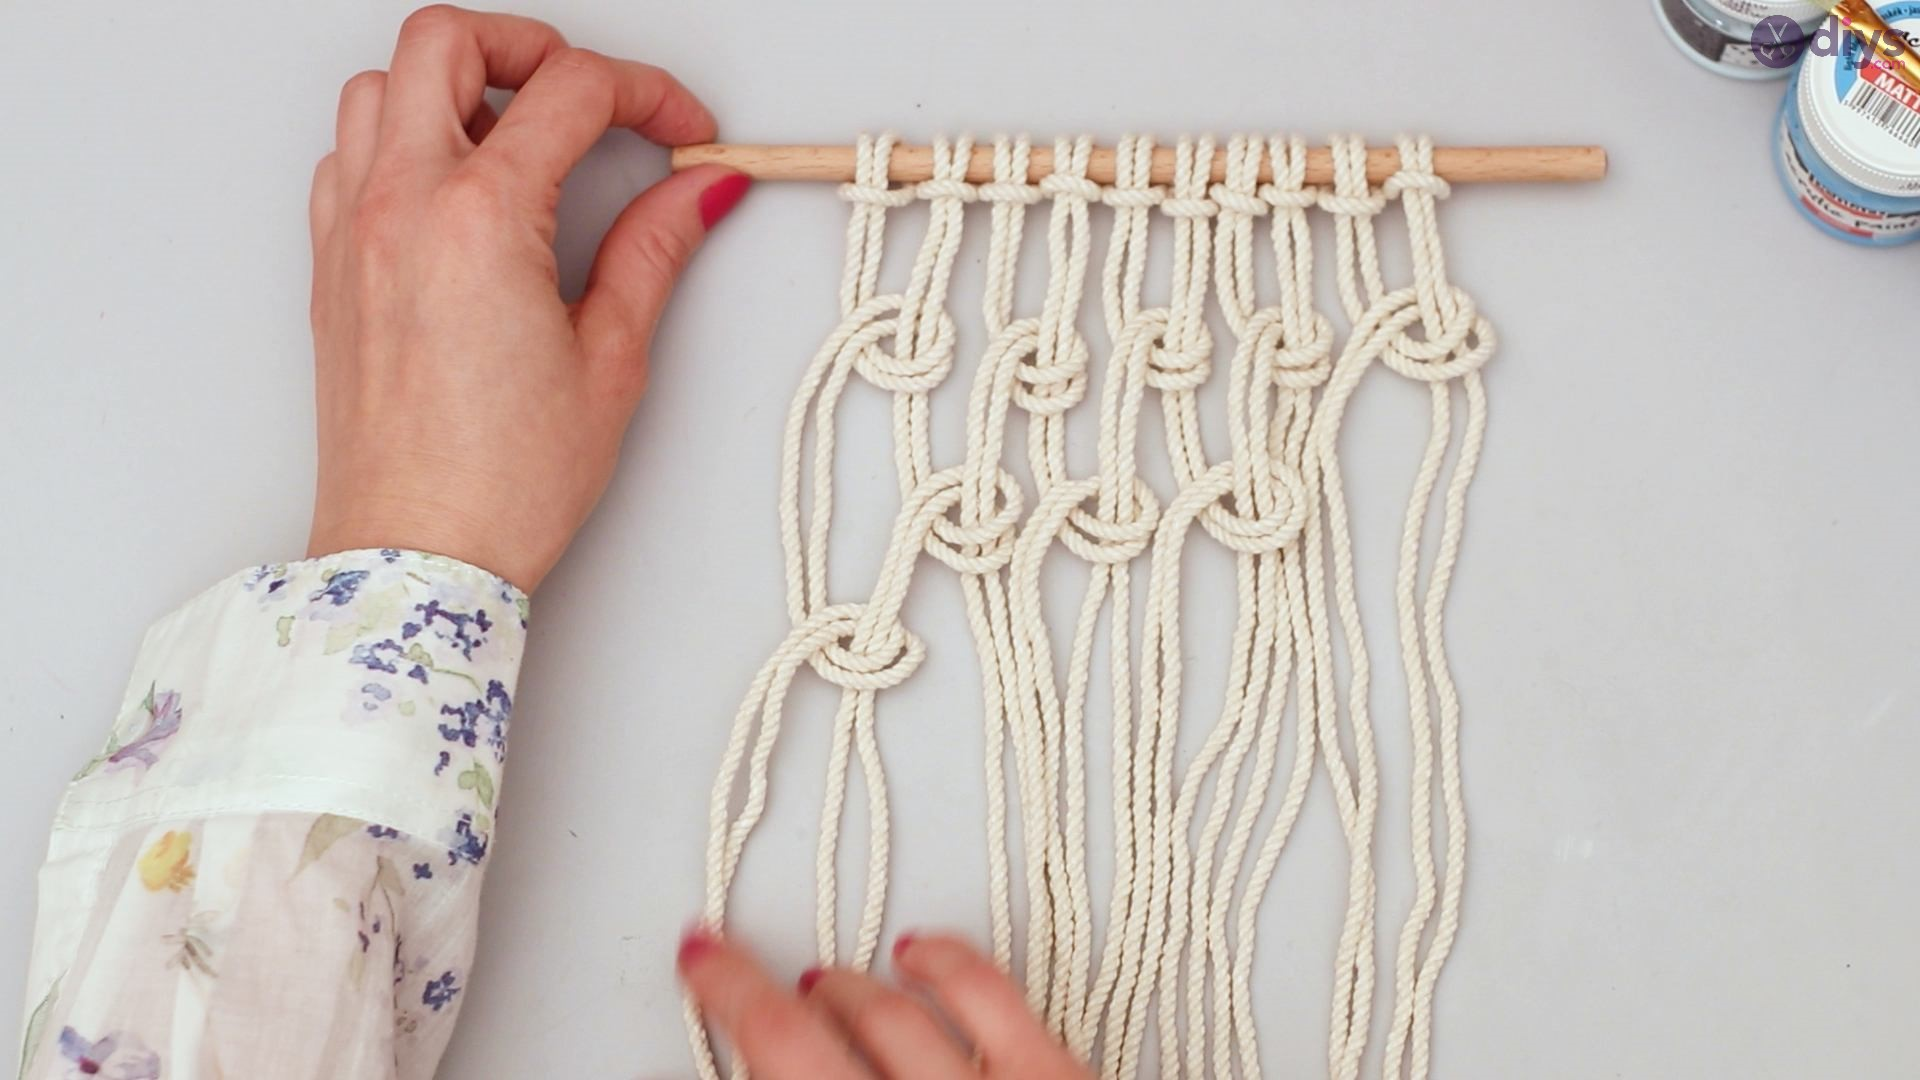 Ombre macrame wall hanging (17)